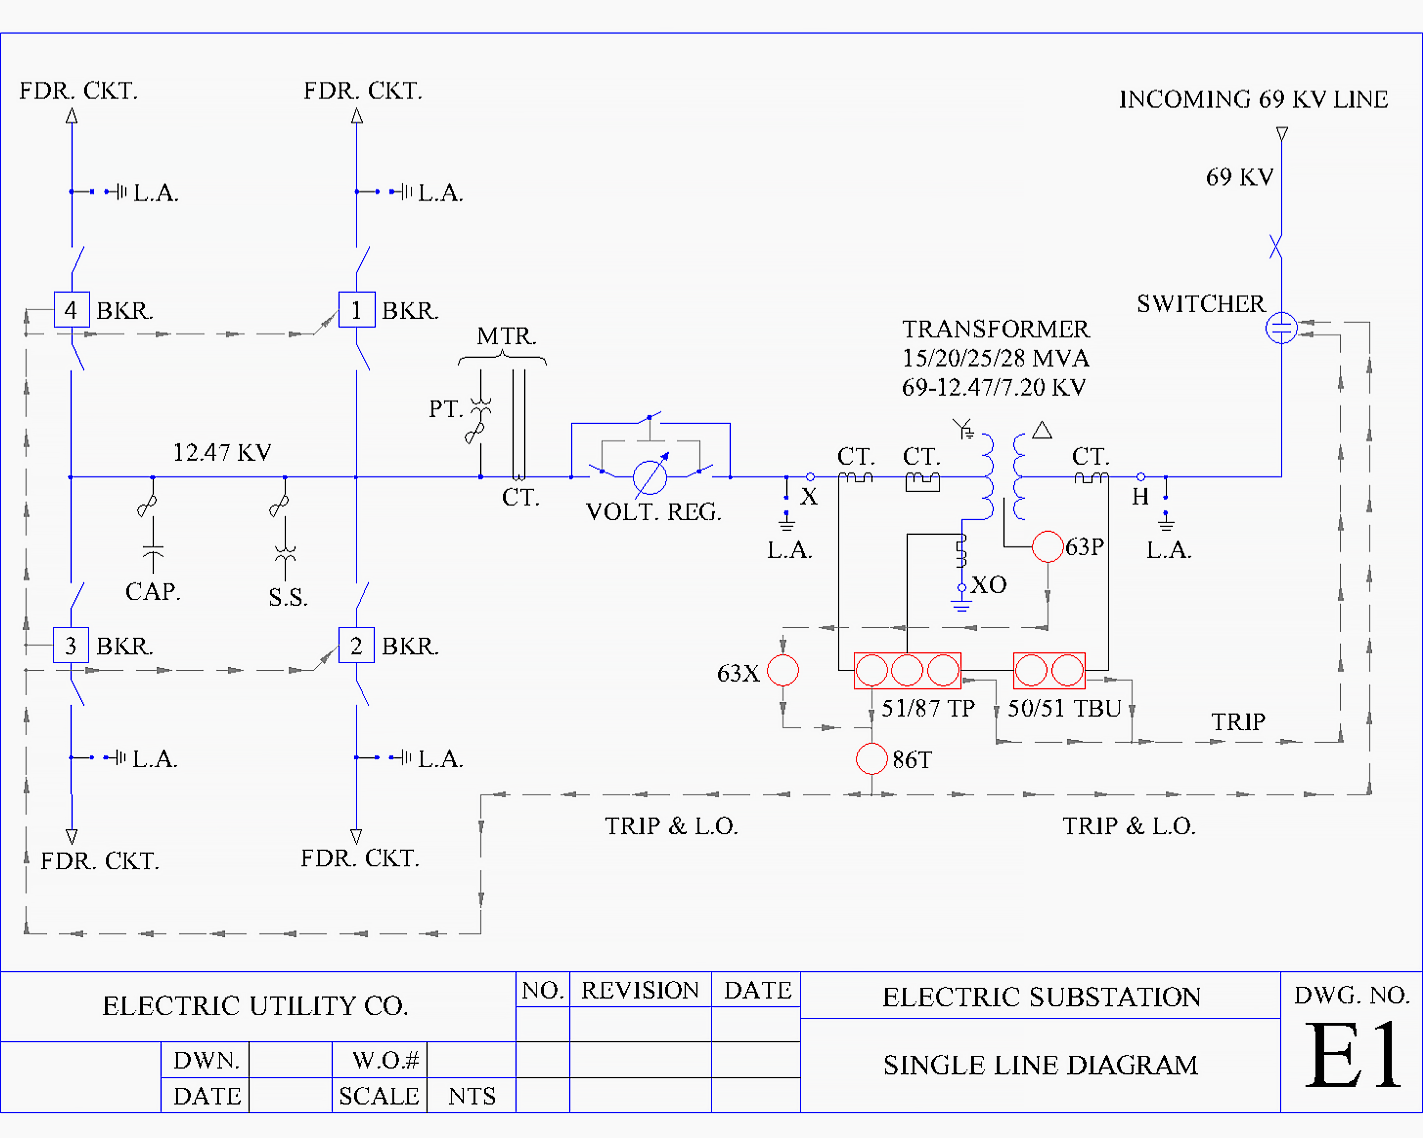 single line diagram of power distribution ford sierra ignition wiring schematic get free image about